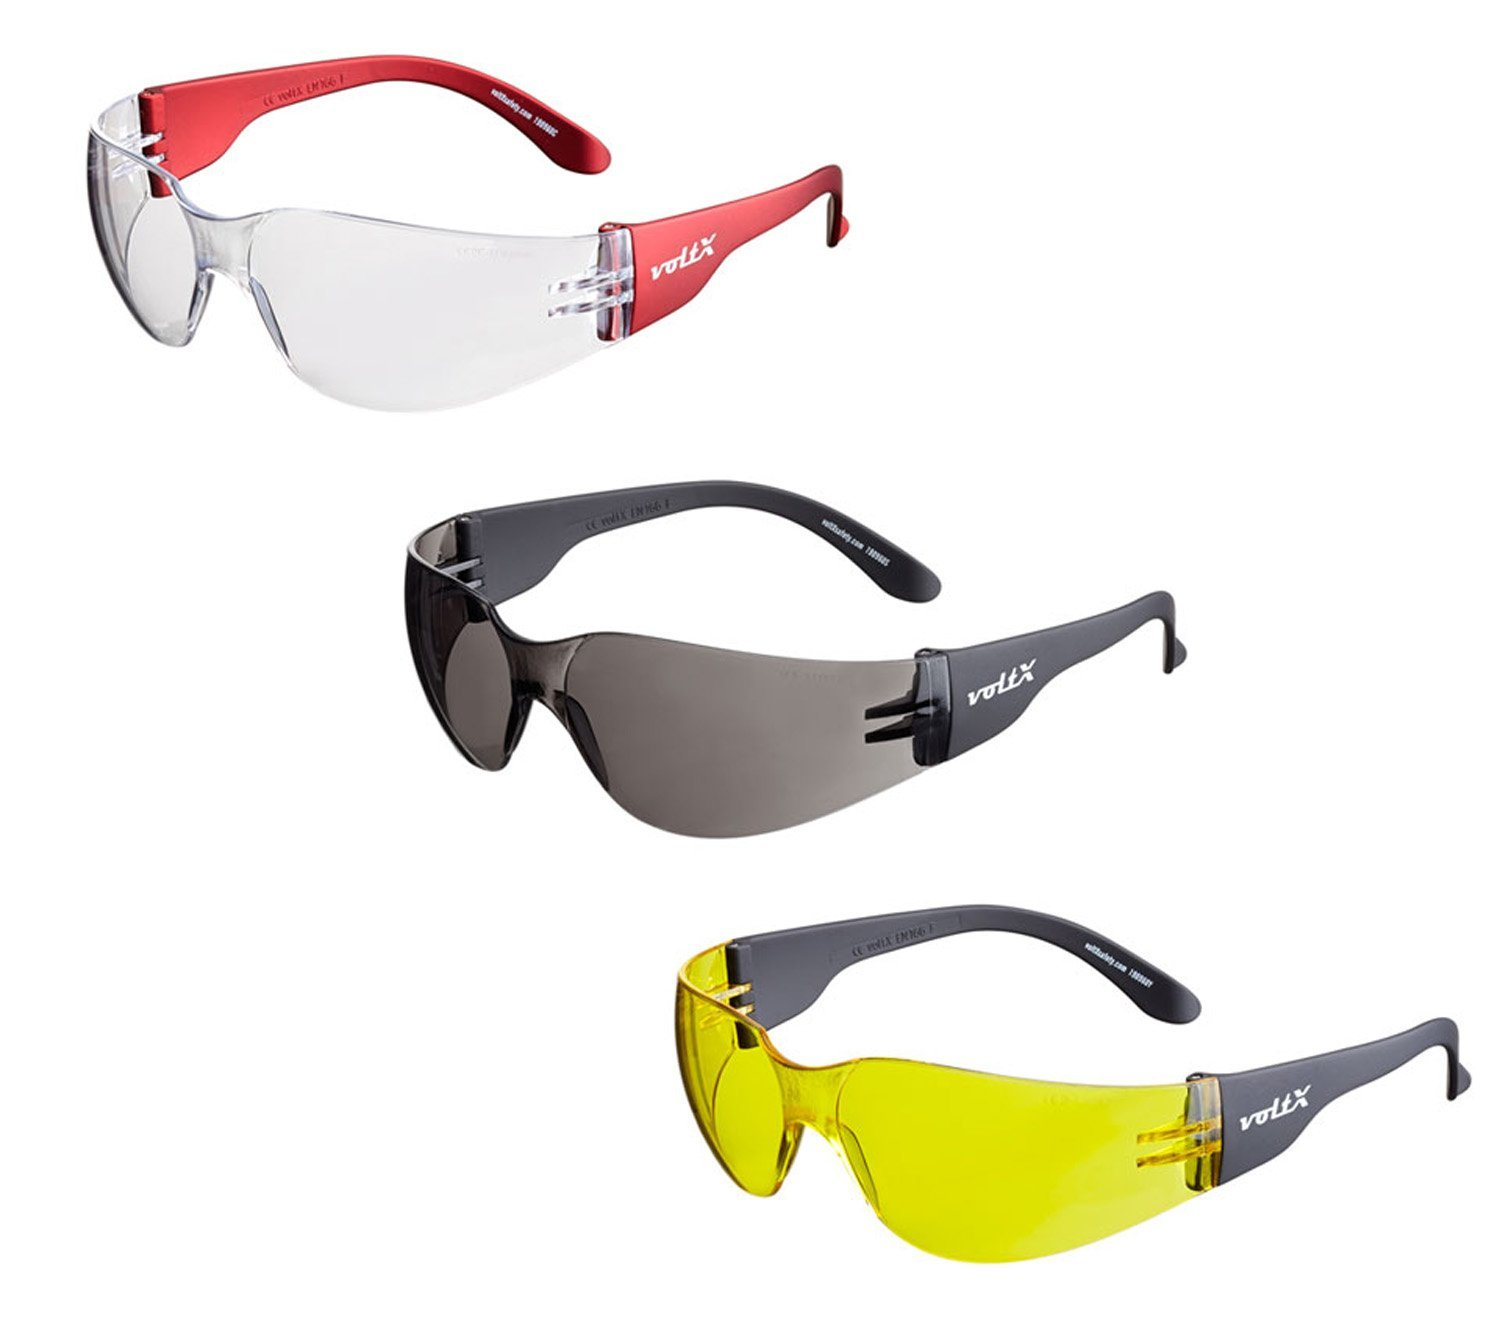 370095d4b26 Best Rated in Safety Glasses   Helpful Customer Reviews - Amazon.co.uk